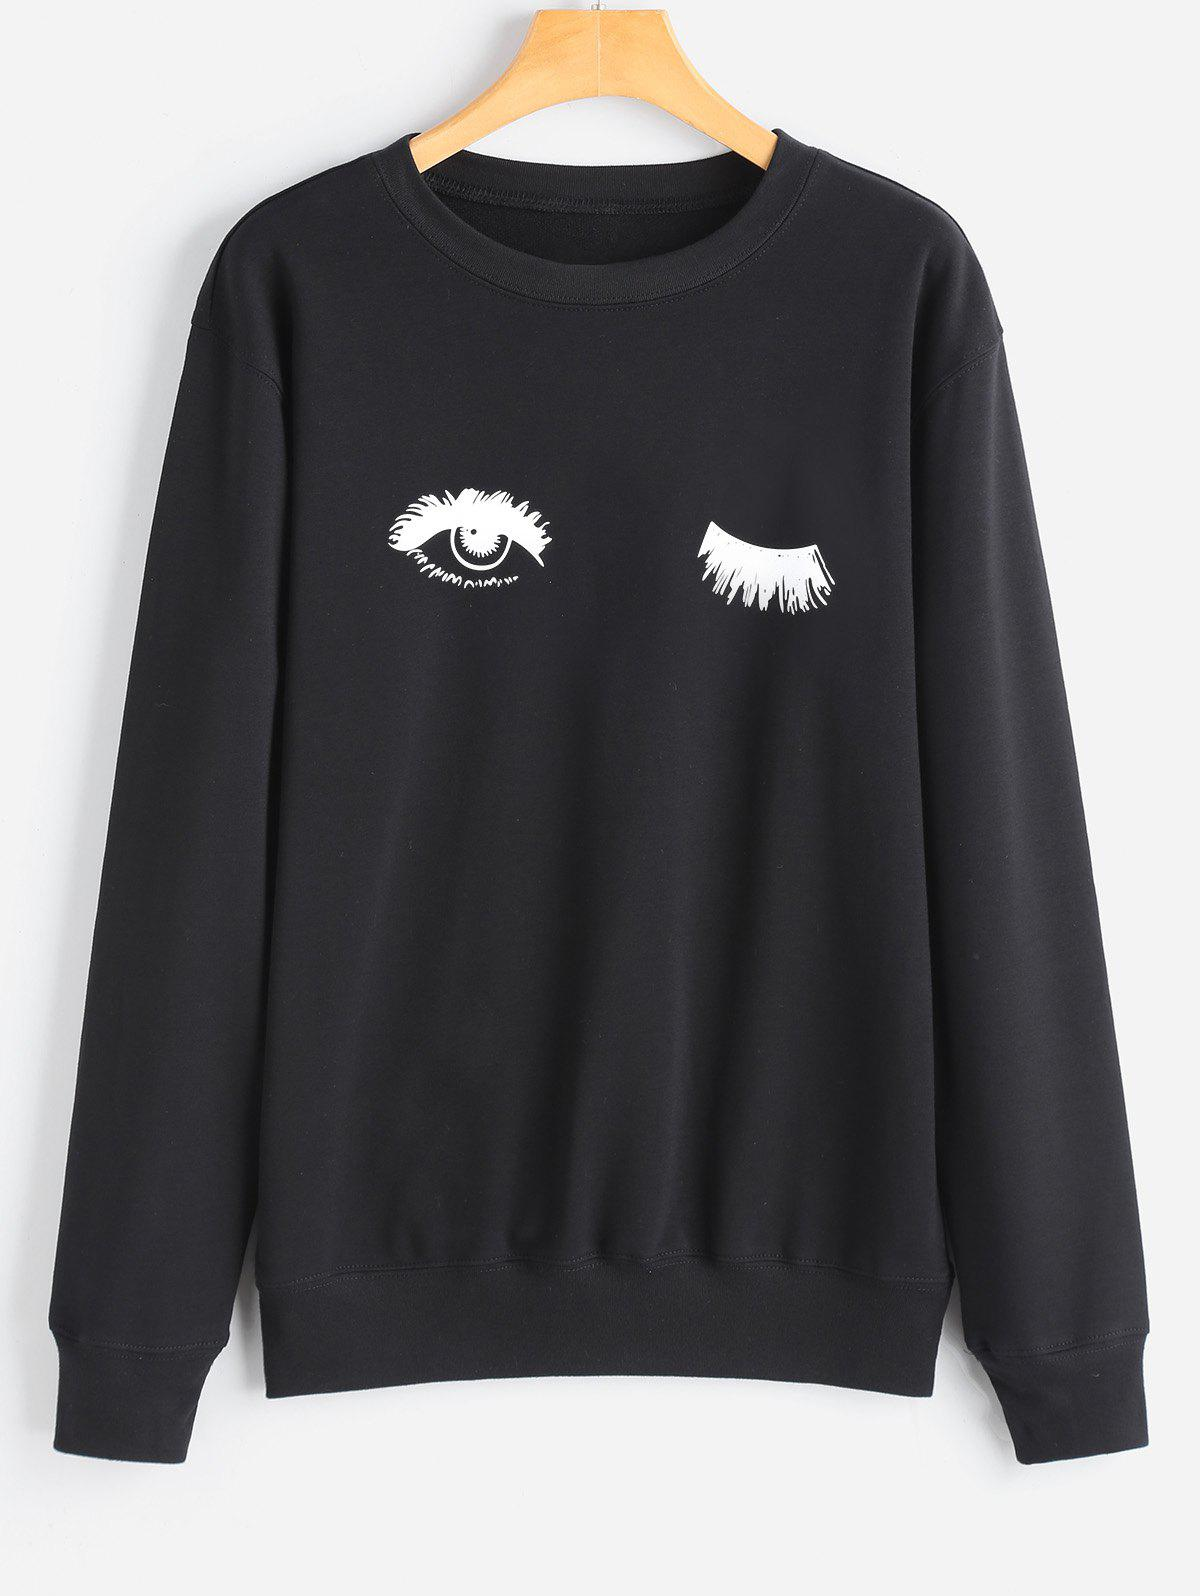 Trendy Eye Print Sweatshirt